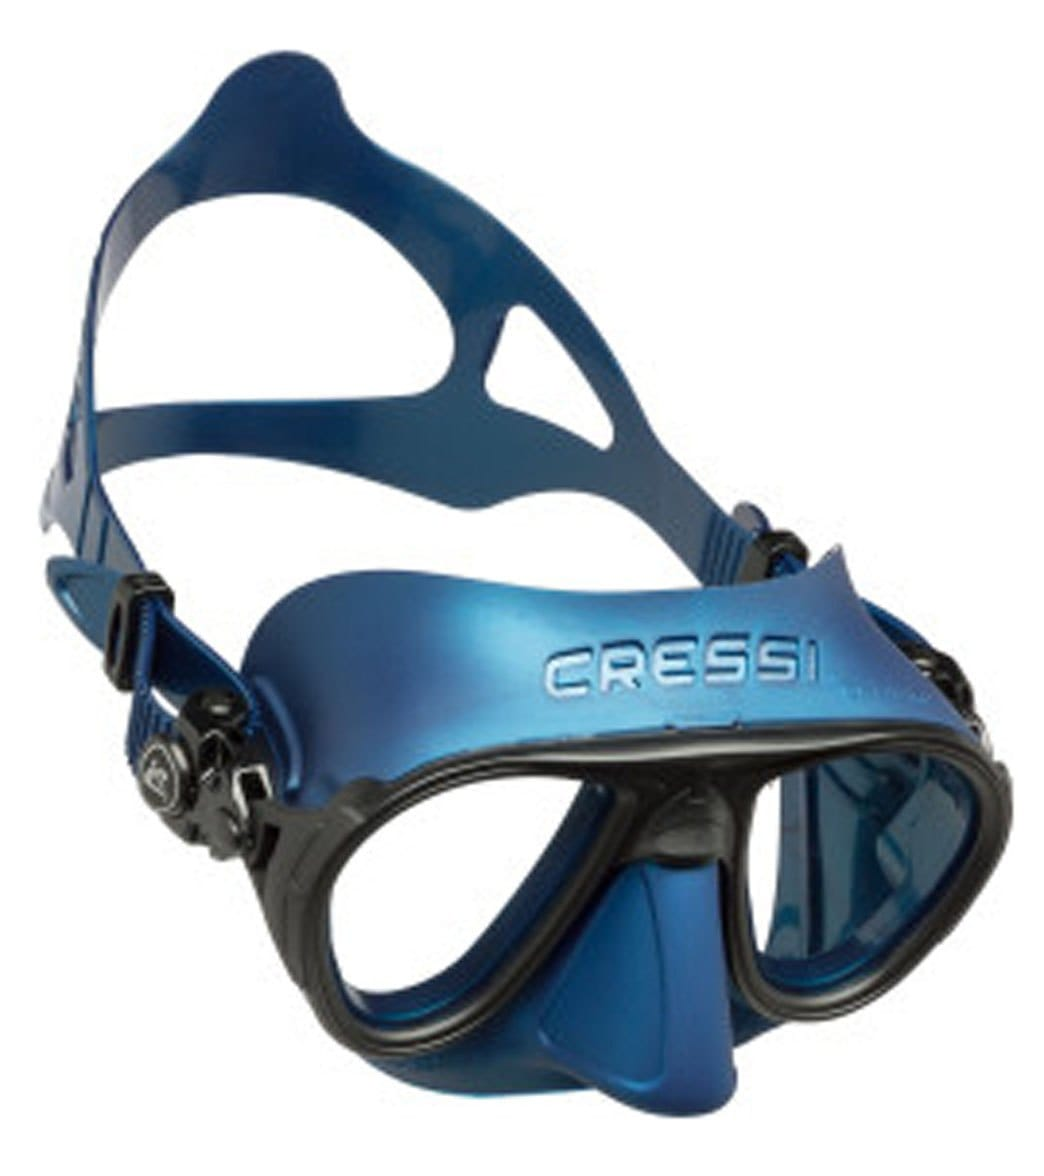 f4ec6468829 Cressi Calibro Anti Fog Scuba Mask at SwimOutlet.com - Free Shipping